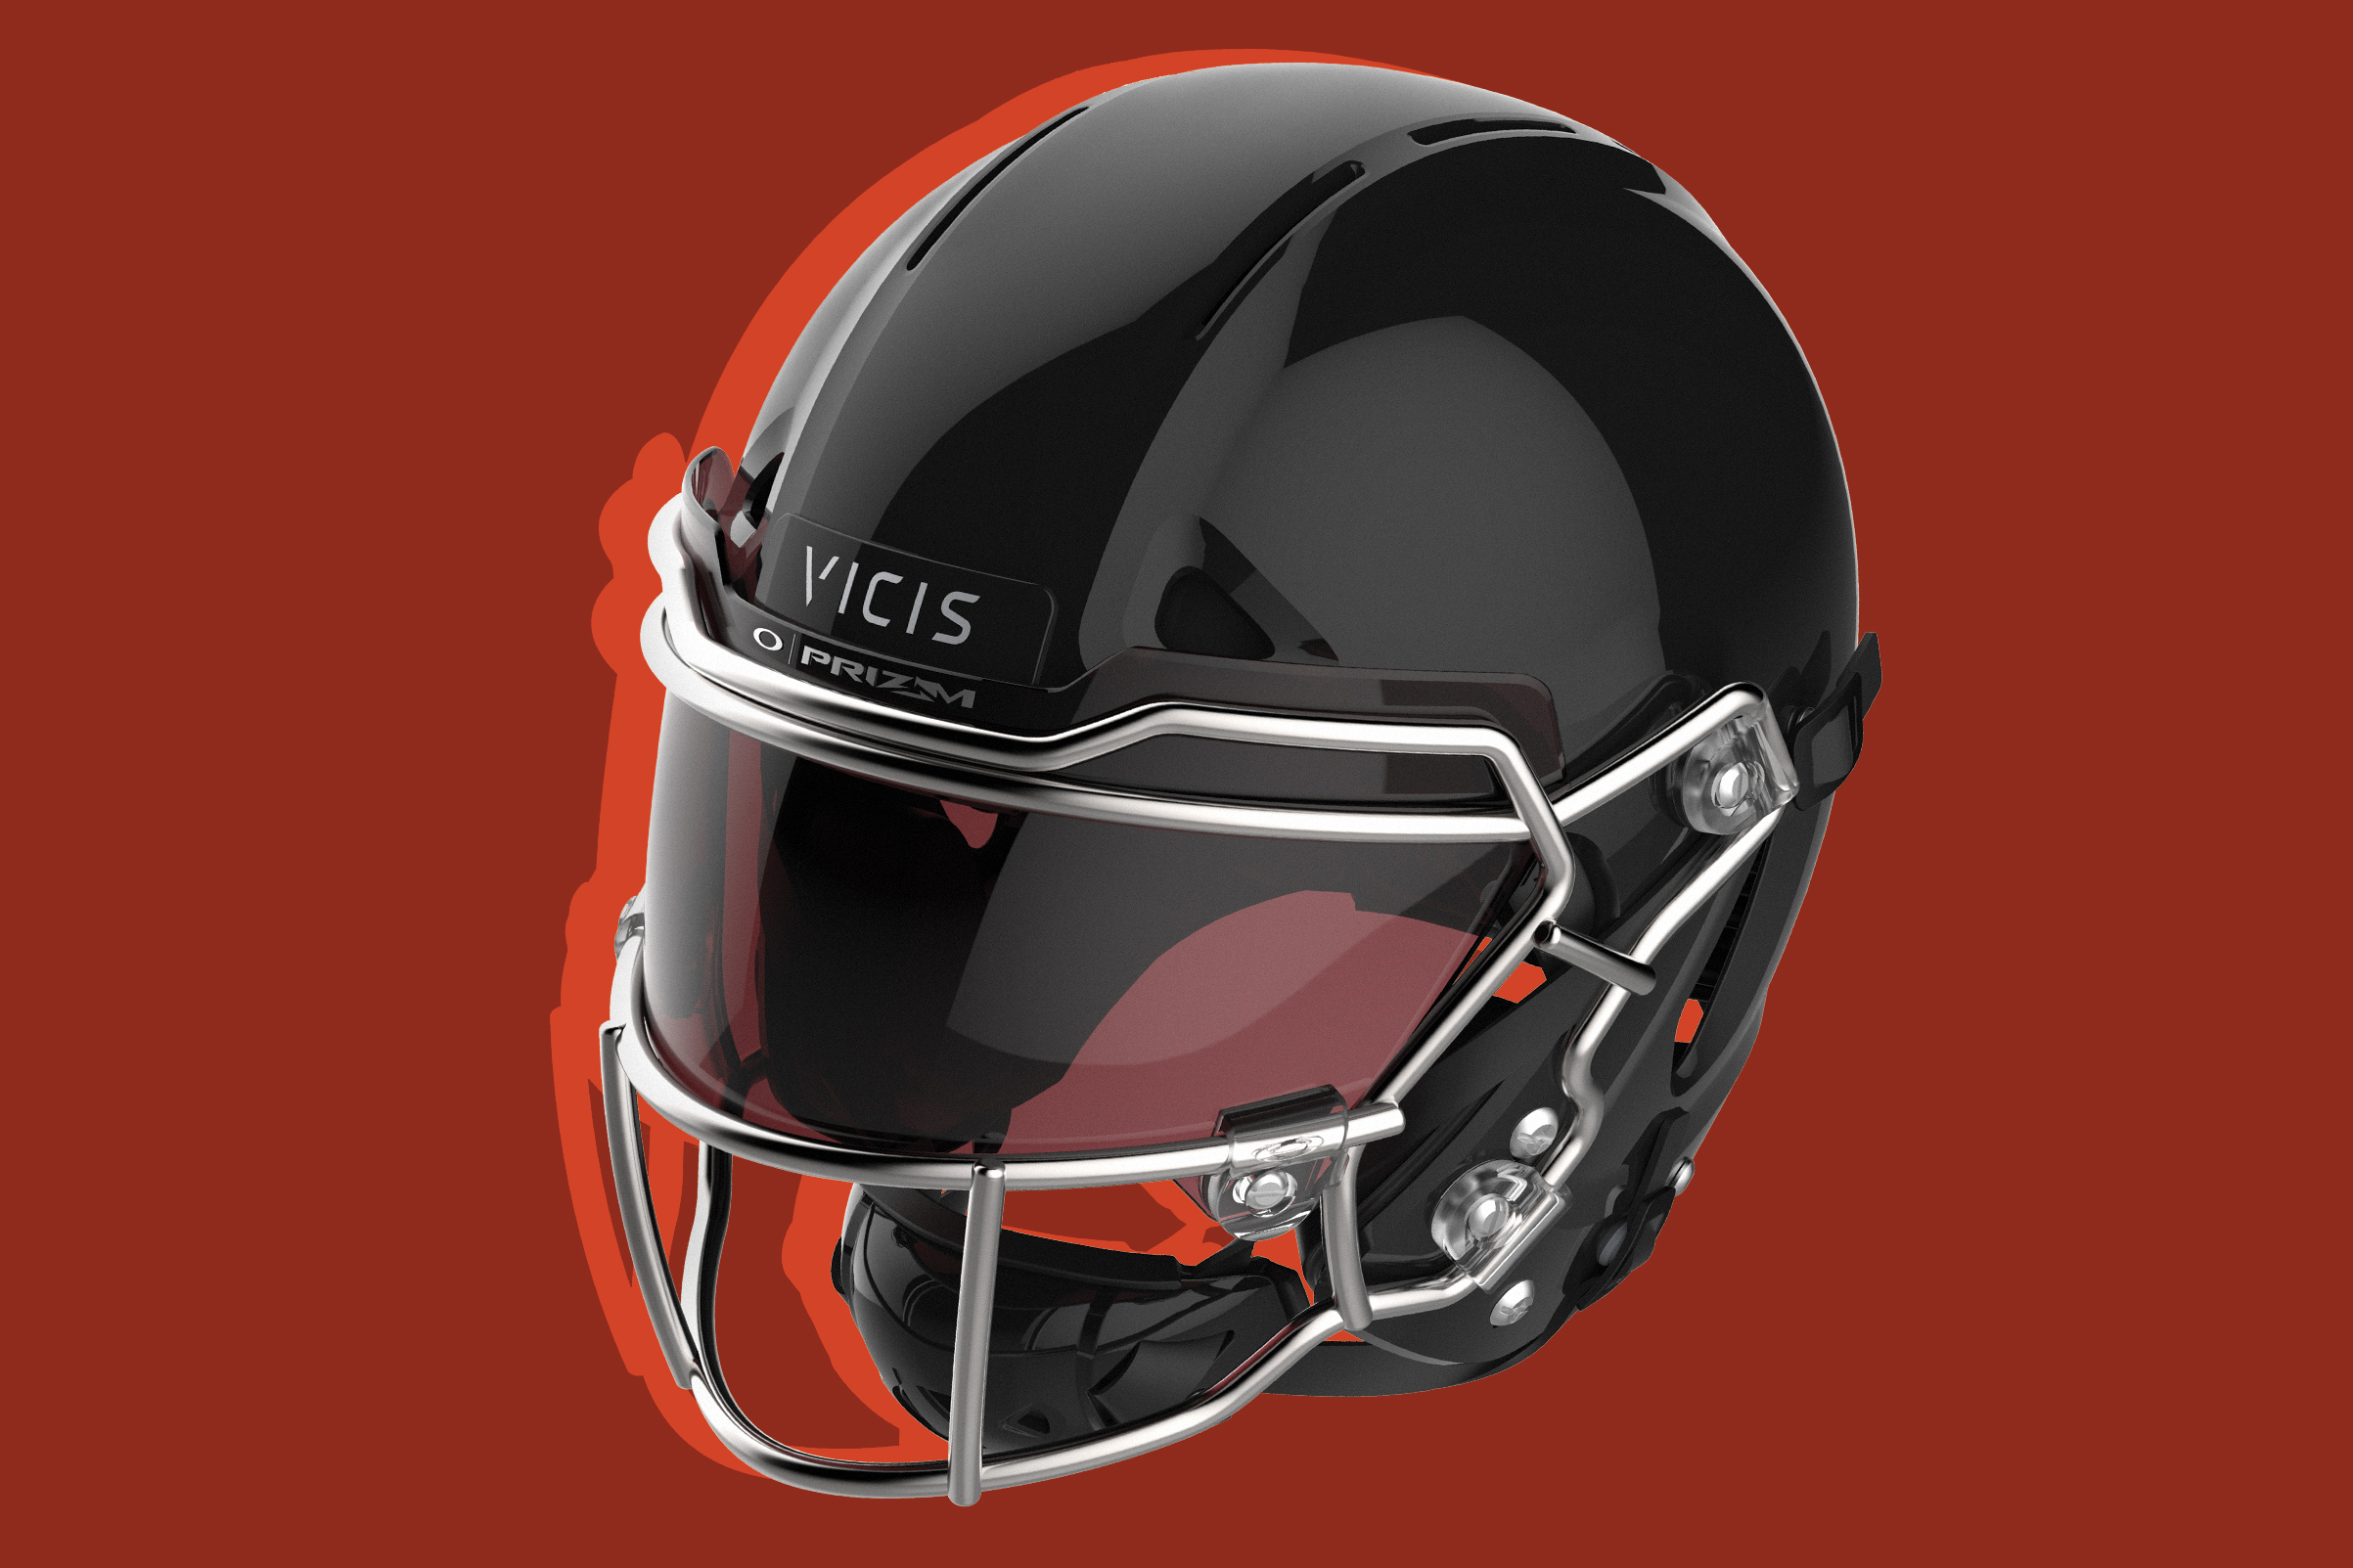 The VICIS Zero1 is one of the best inventions of 2017